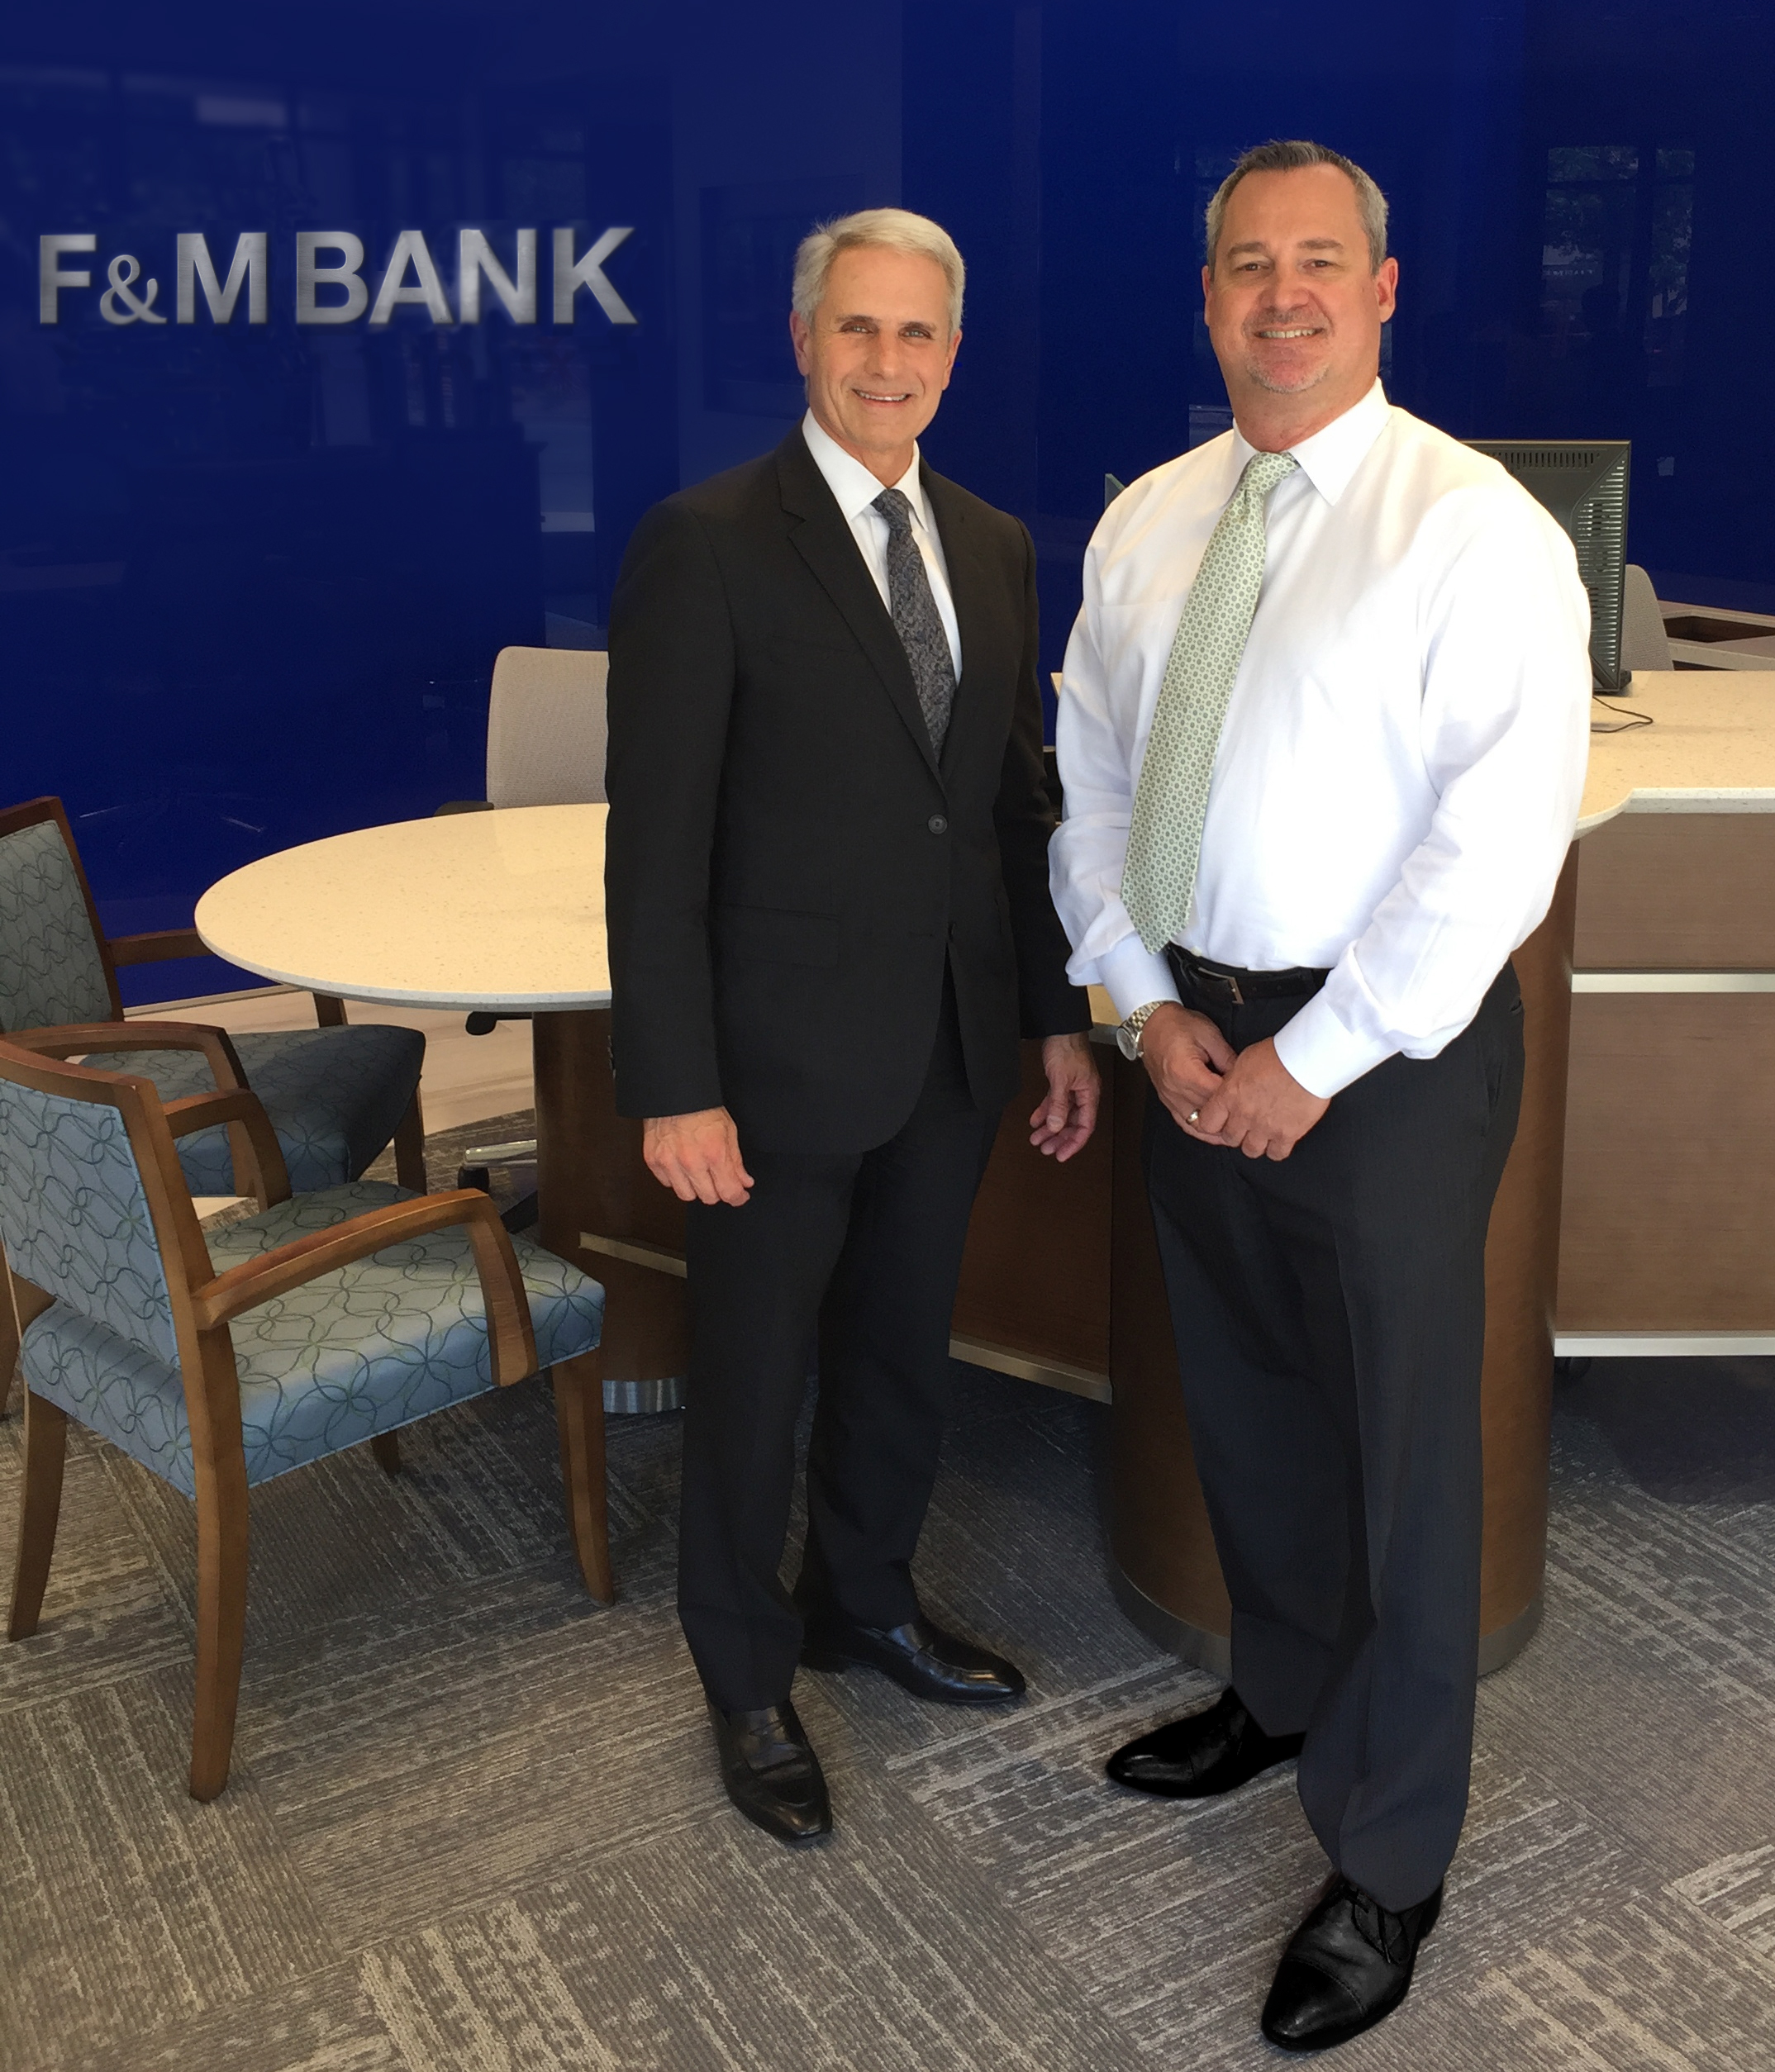 Kent A. Steinwert, Chairman, President and Chief Executive Officer, and Dave Zitterow, Executive Vice President and SF Bay Area Market Executive, in the Bank's new downtown Walnut Creek branch near Broadway Plaza. (Photo: Business Wire)